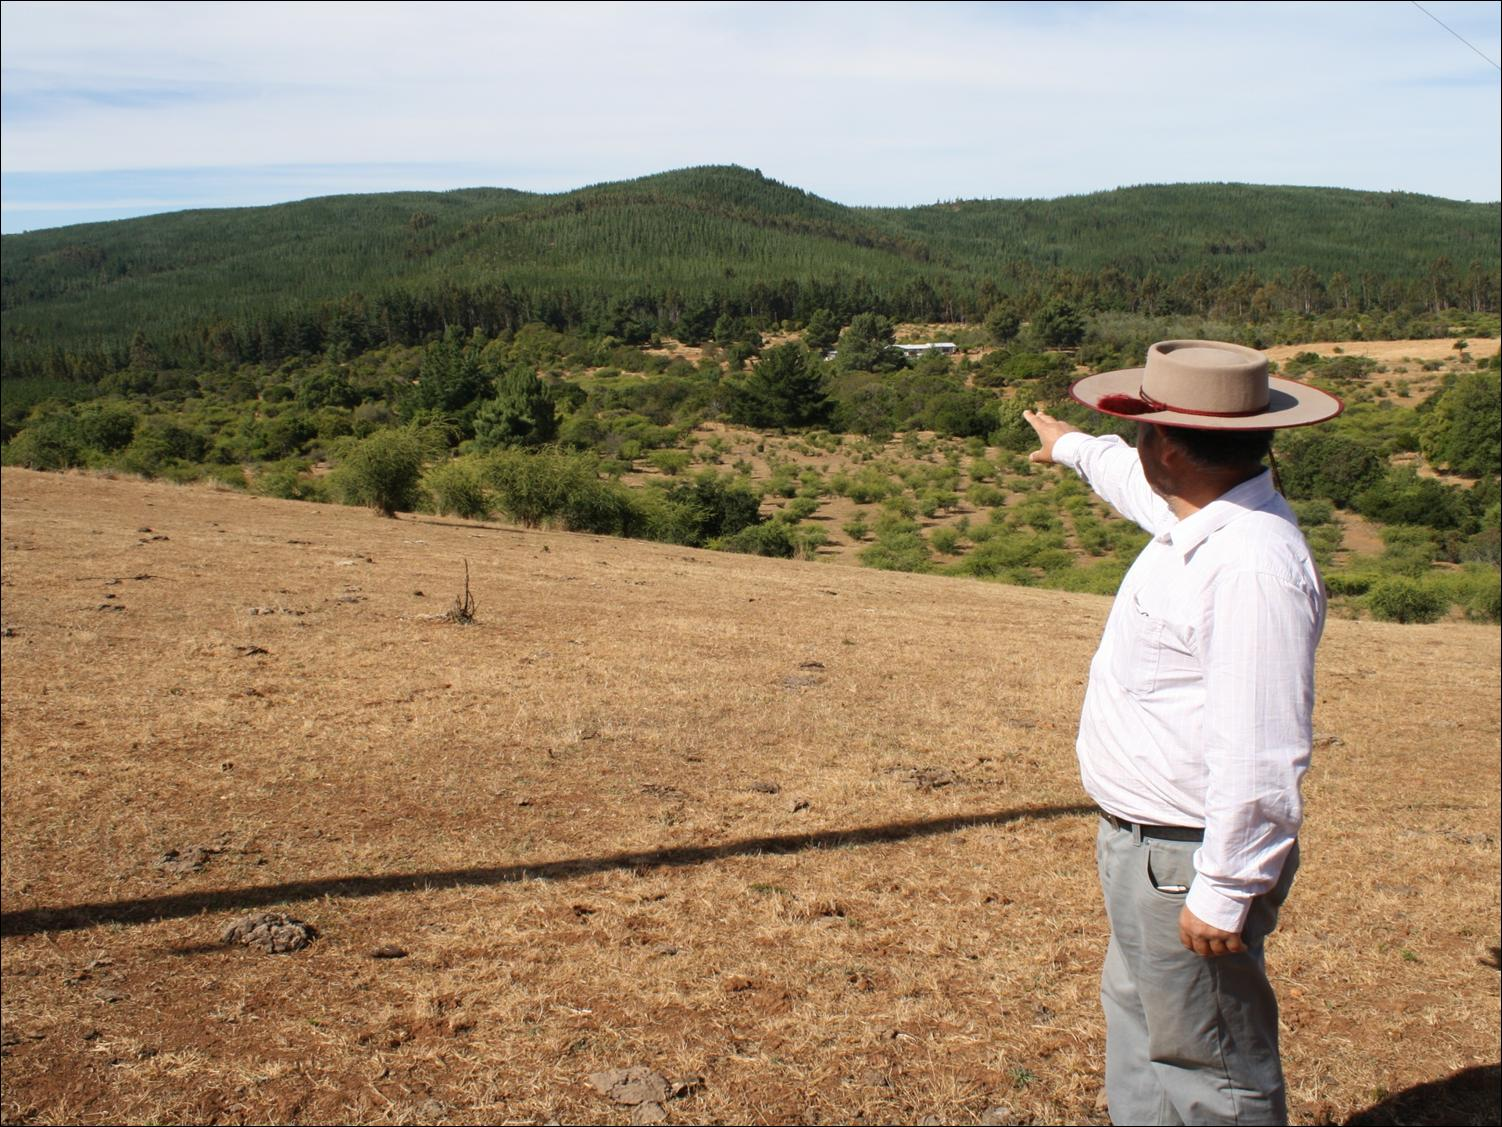 Cristián Alarcón Ferrari: Climate Change, Land Use, and the Contradictions of Forestry Development in Chile and Sweden